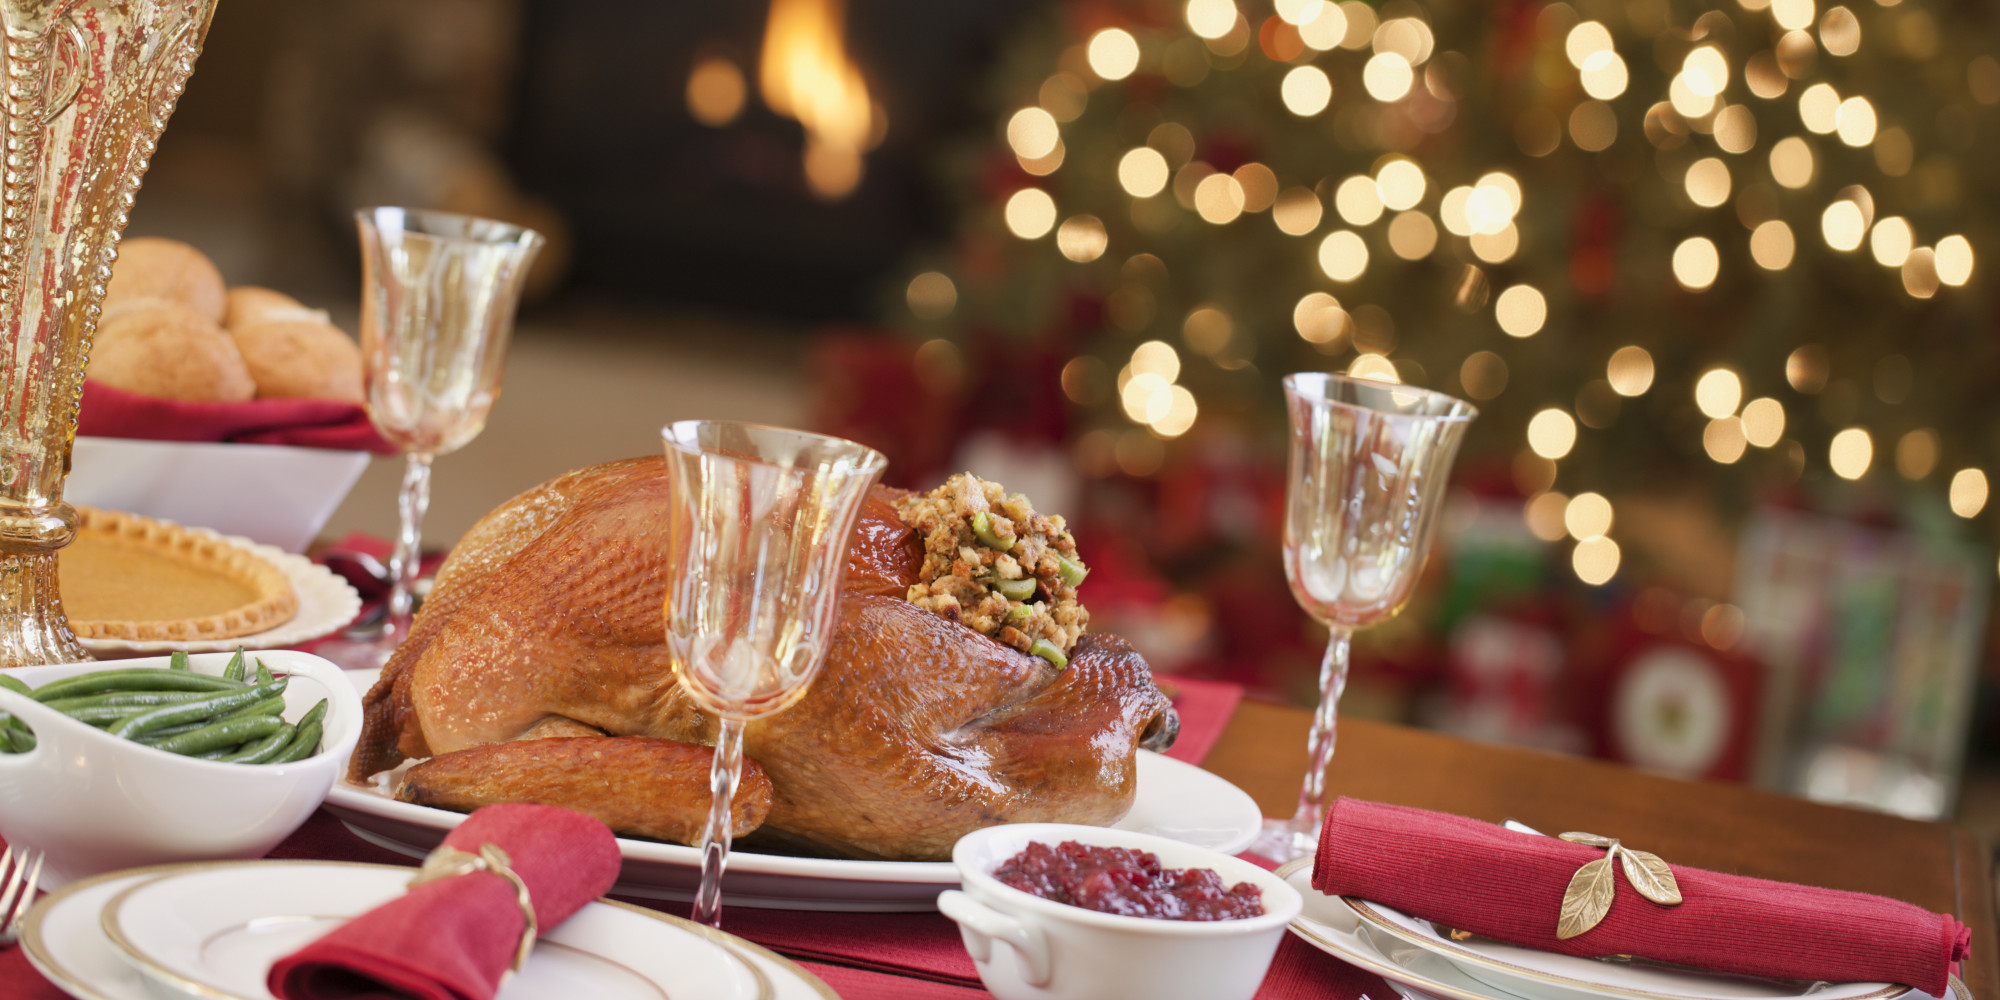 What Do You Eat For Christmas Dinner? POLL